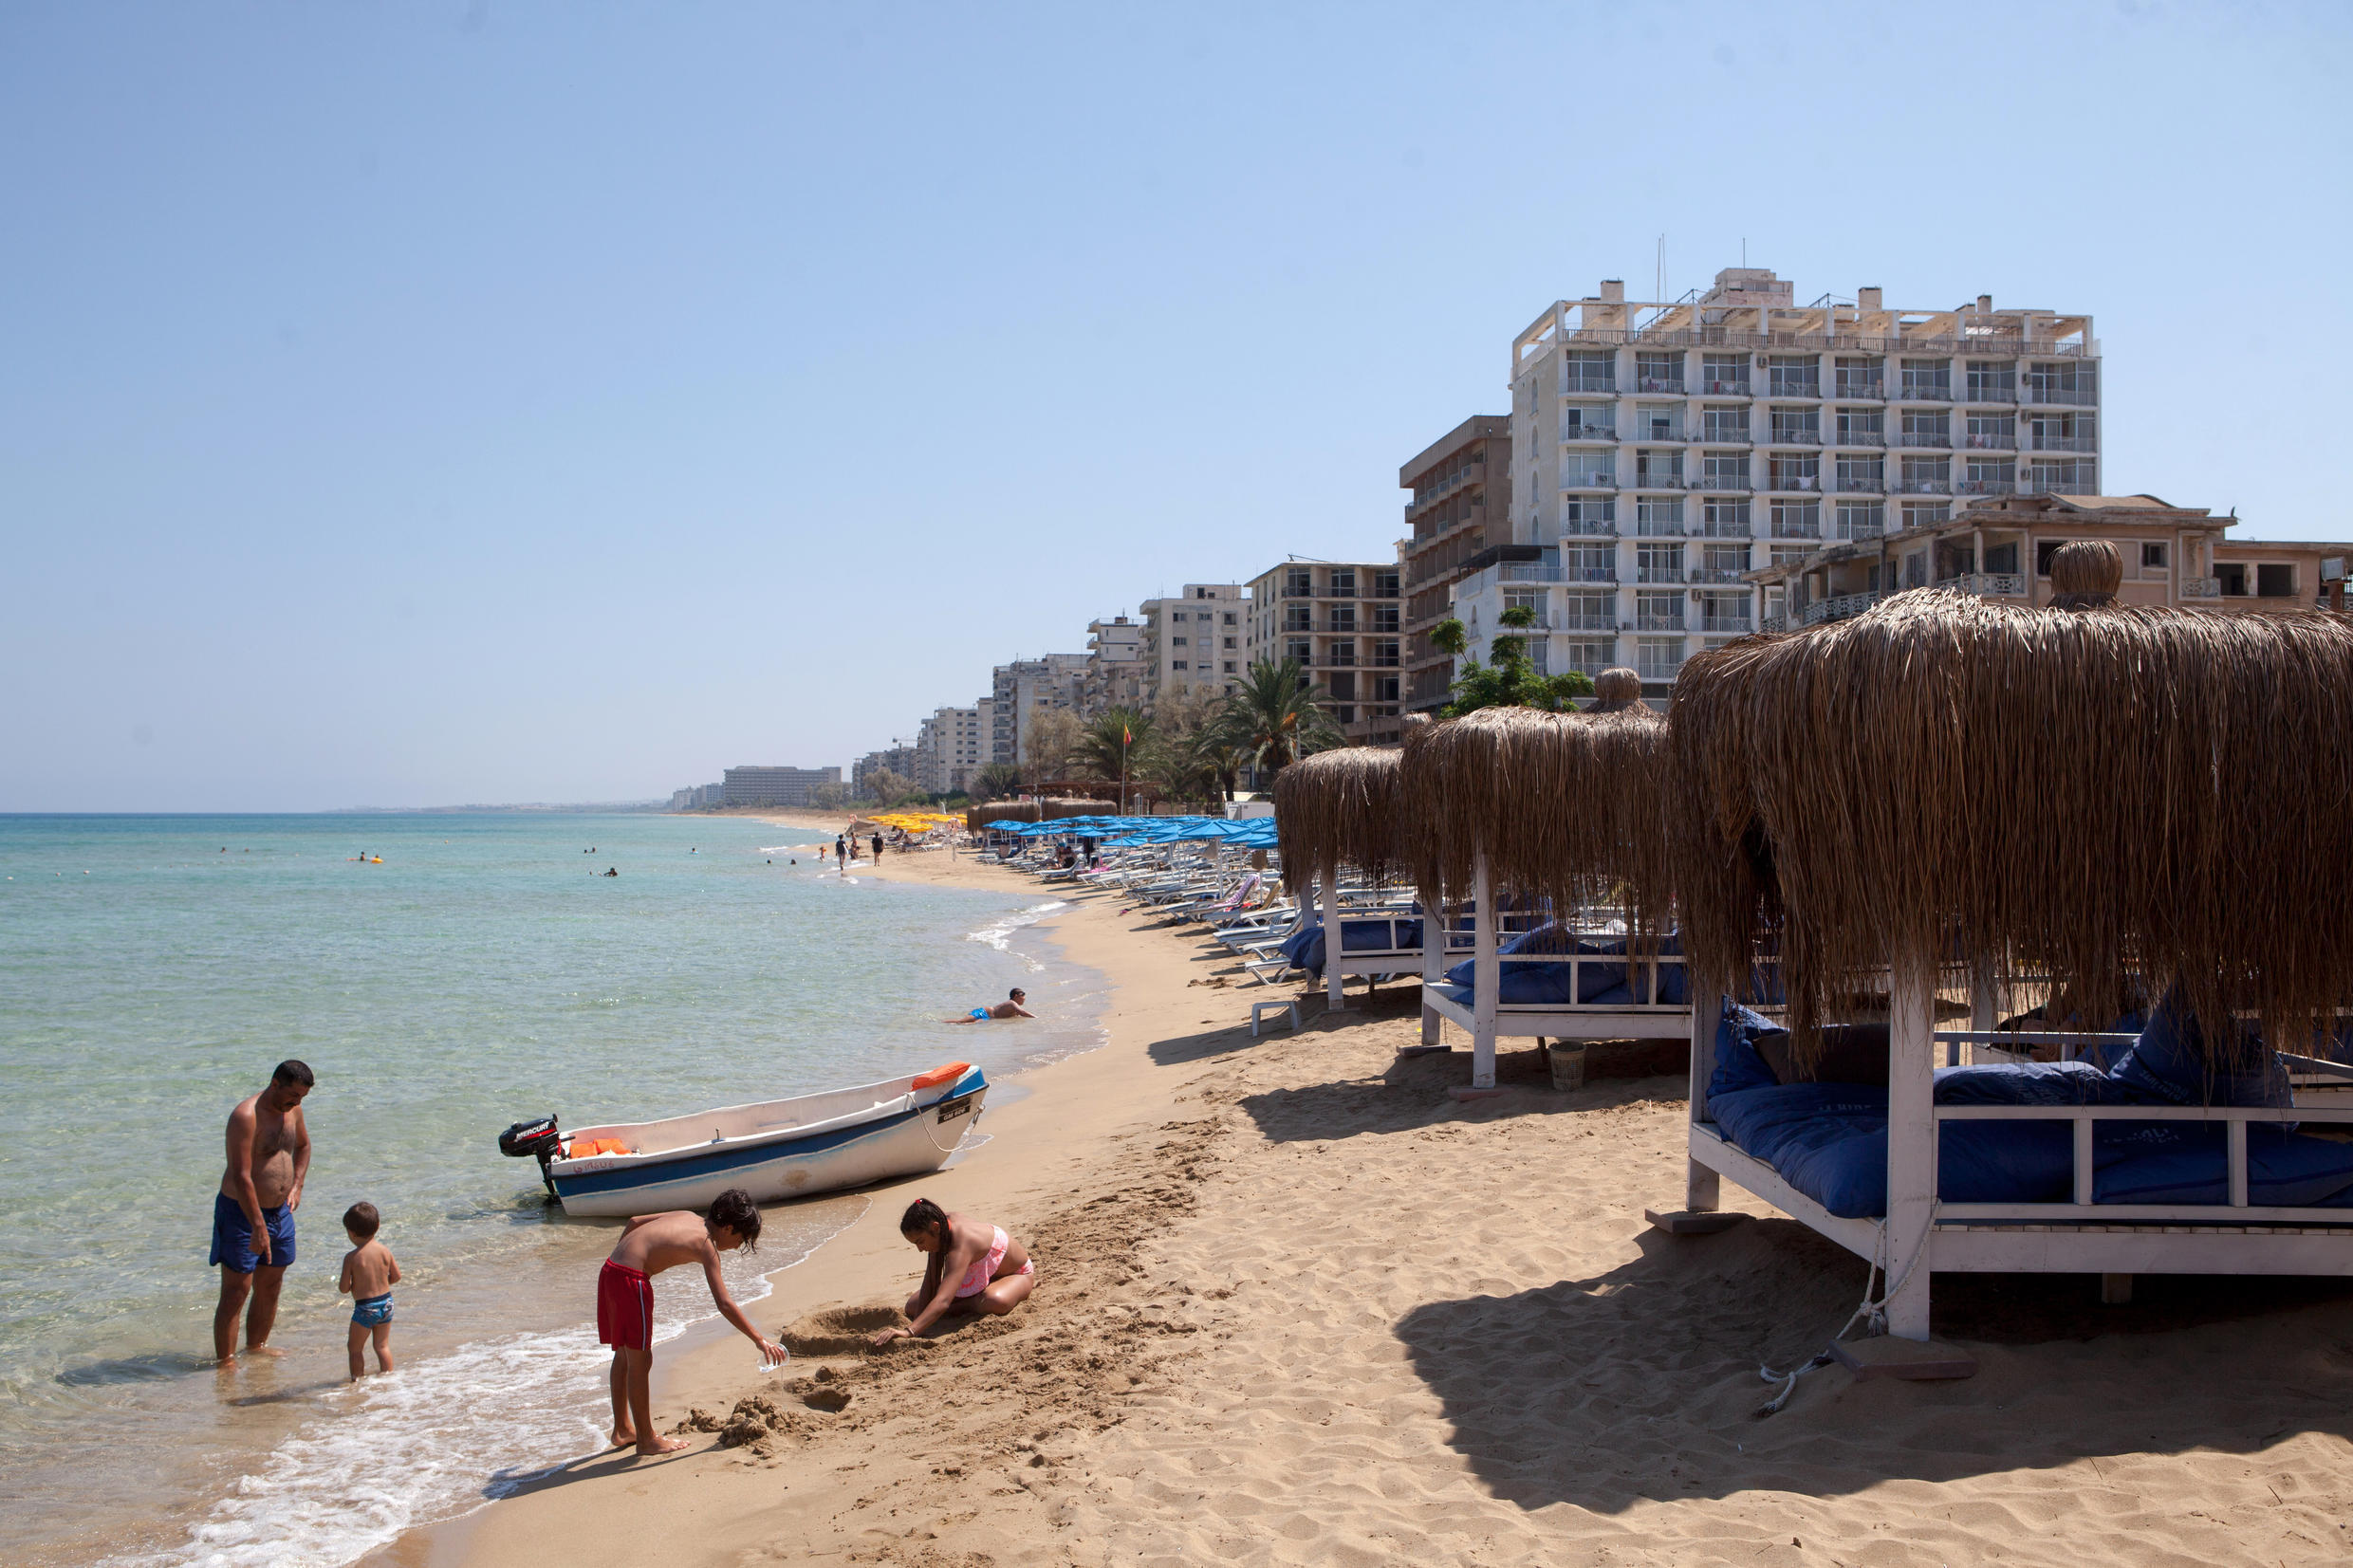 Tourists on a beach near the fenced-off beach area of the Turkish military-controlled ghost town of Varosha in northern Cyprus